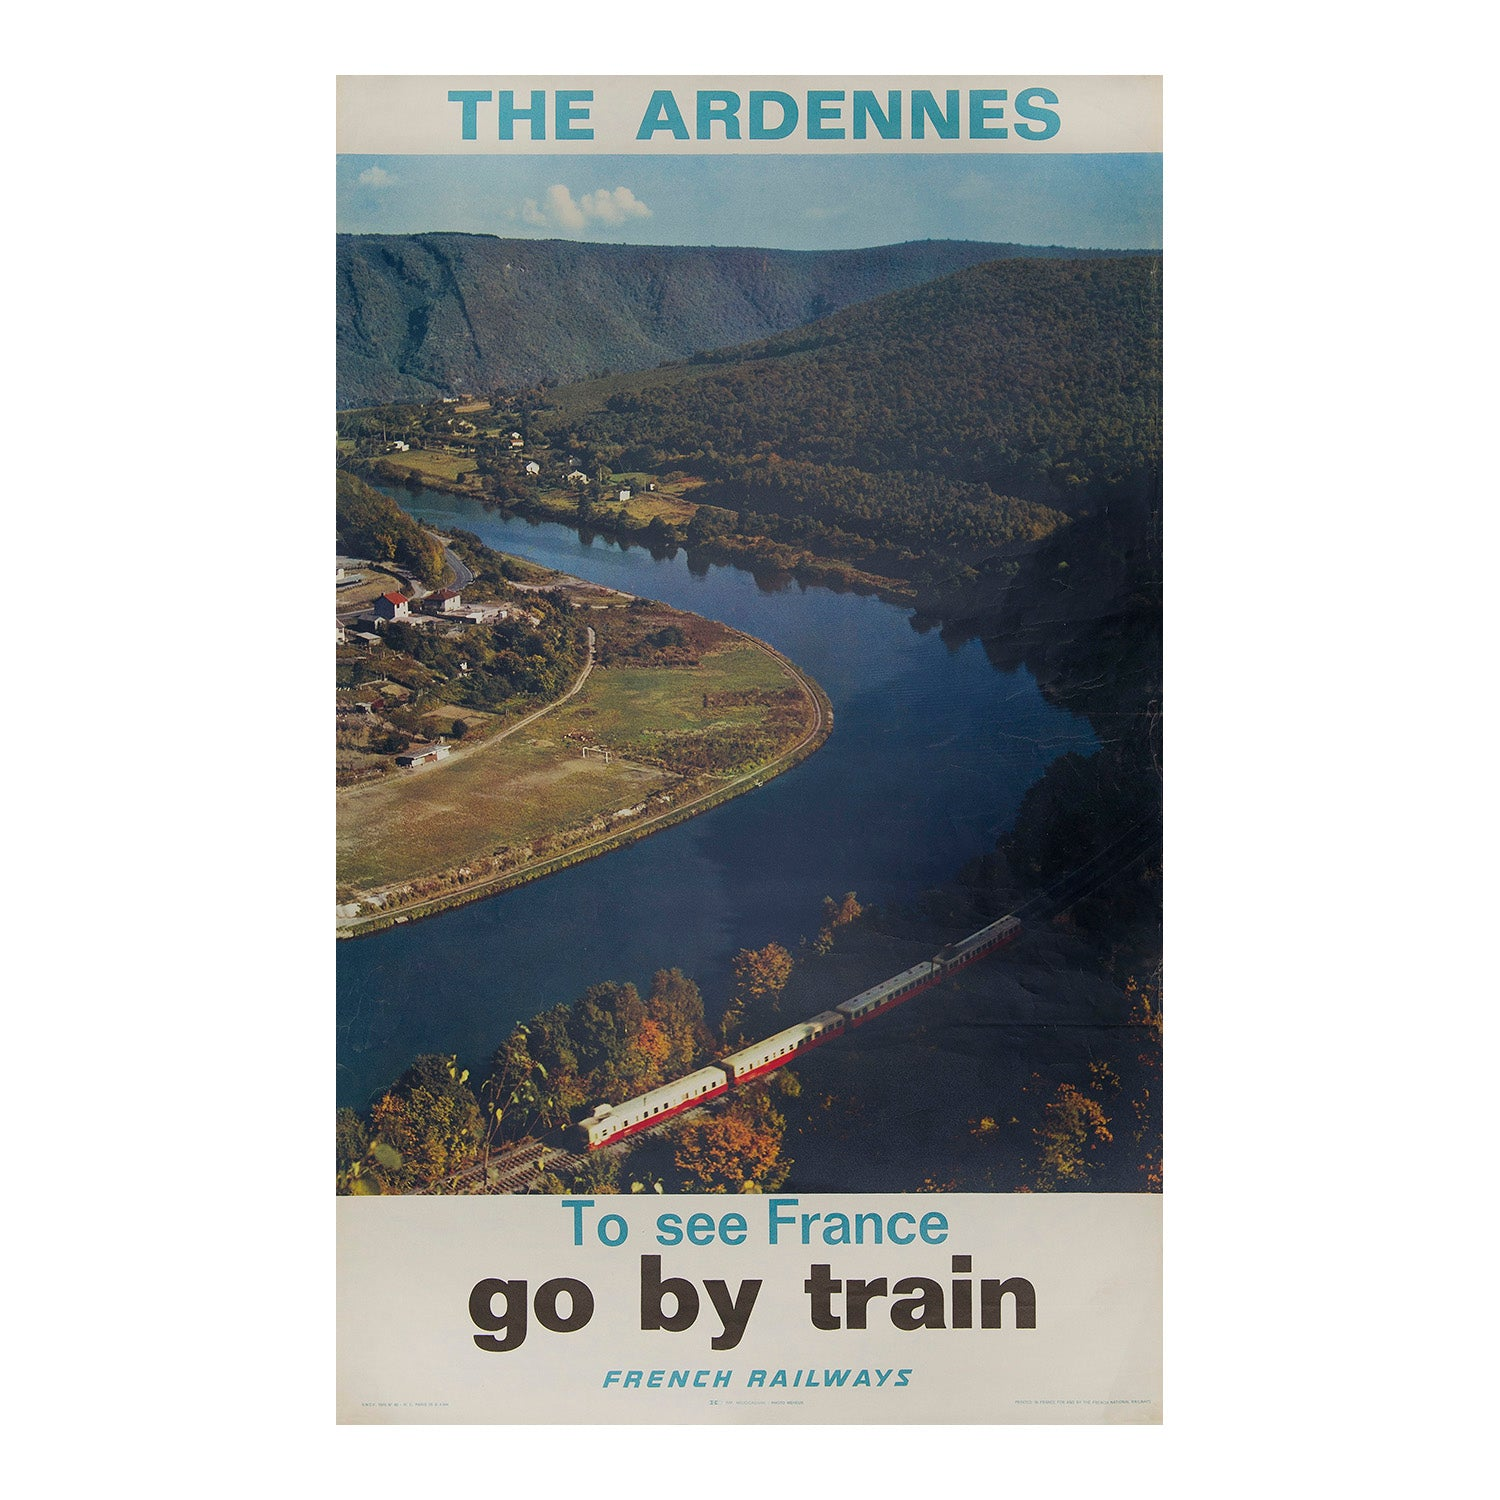 The Ardennes. To see France go by train. French Railways